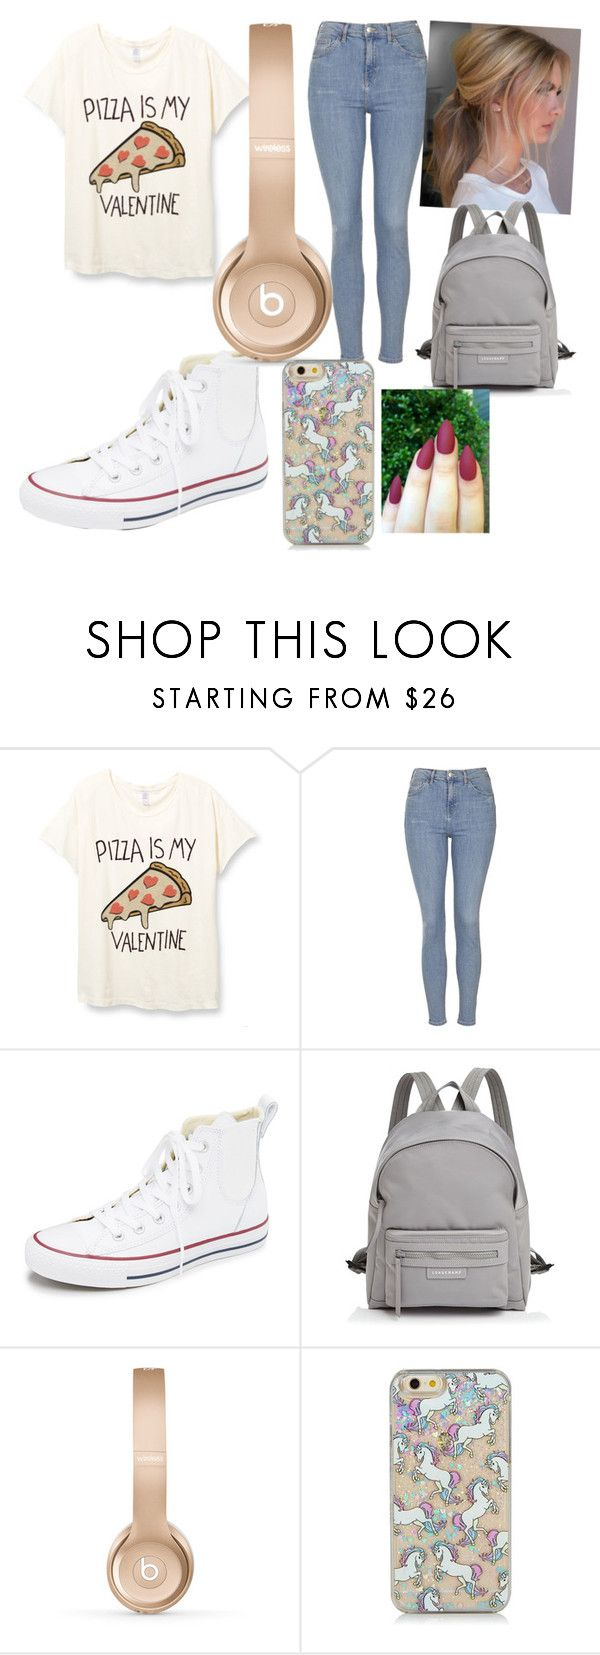 """me and  on v-day"" by maryjsullivan ❤ liked on Polyvore featuring Topshop, Converse, Longchamp and Beats by Dr. Dre"